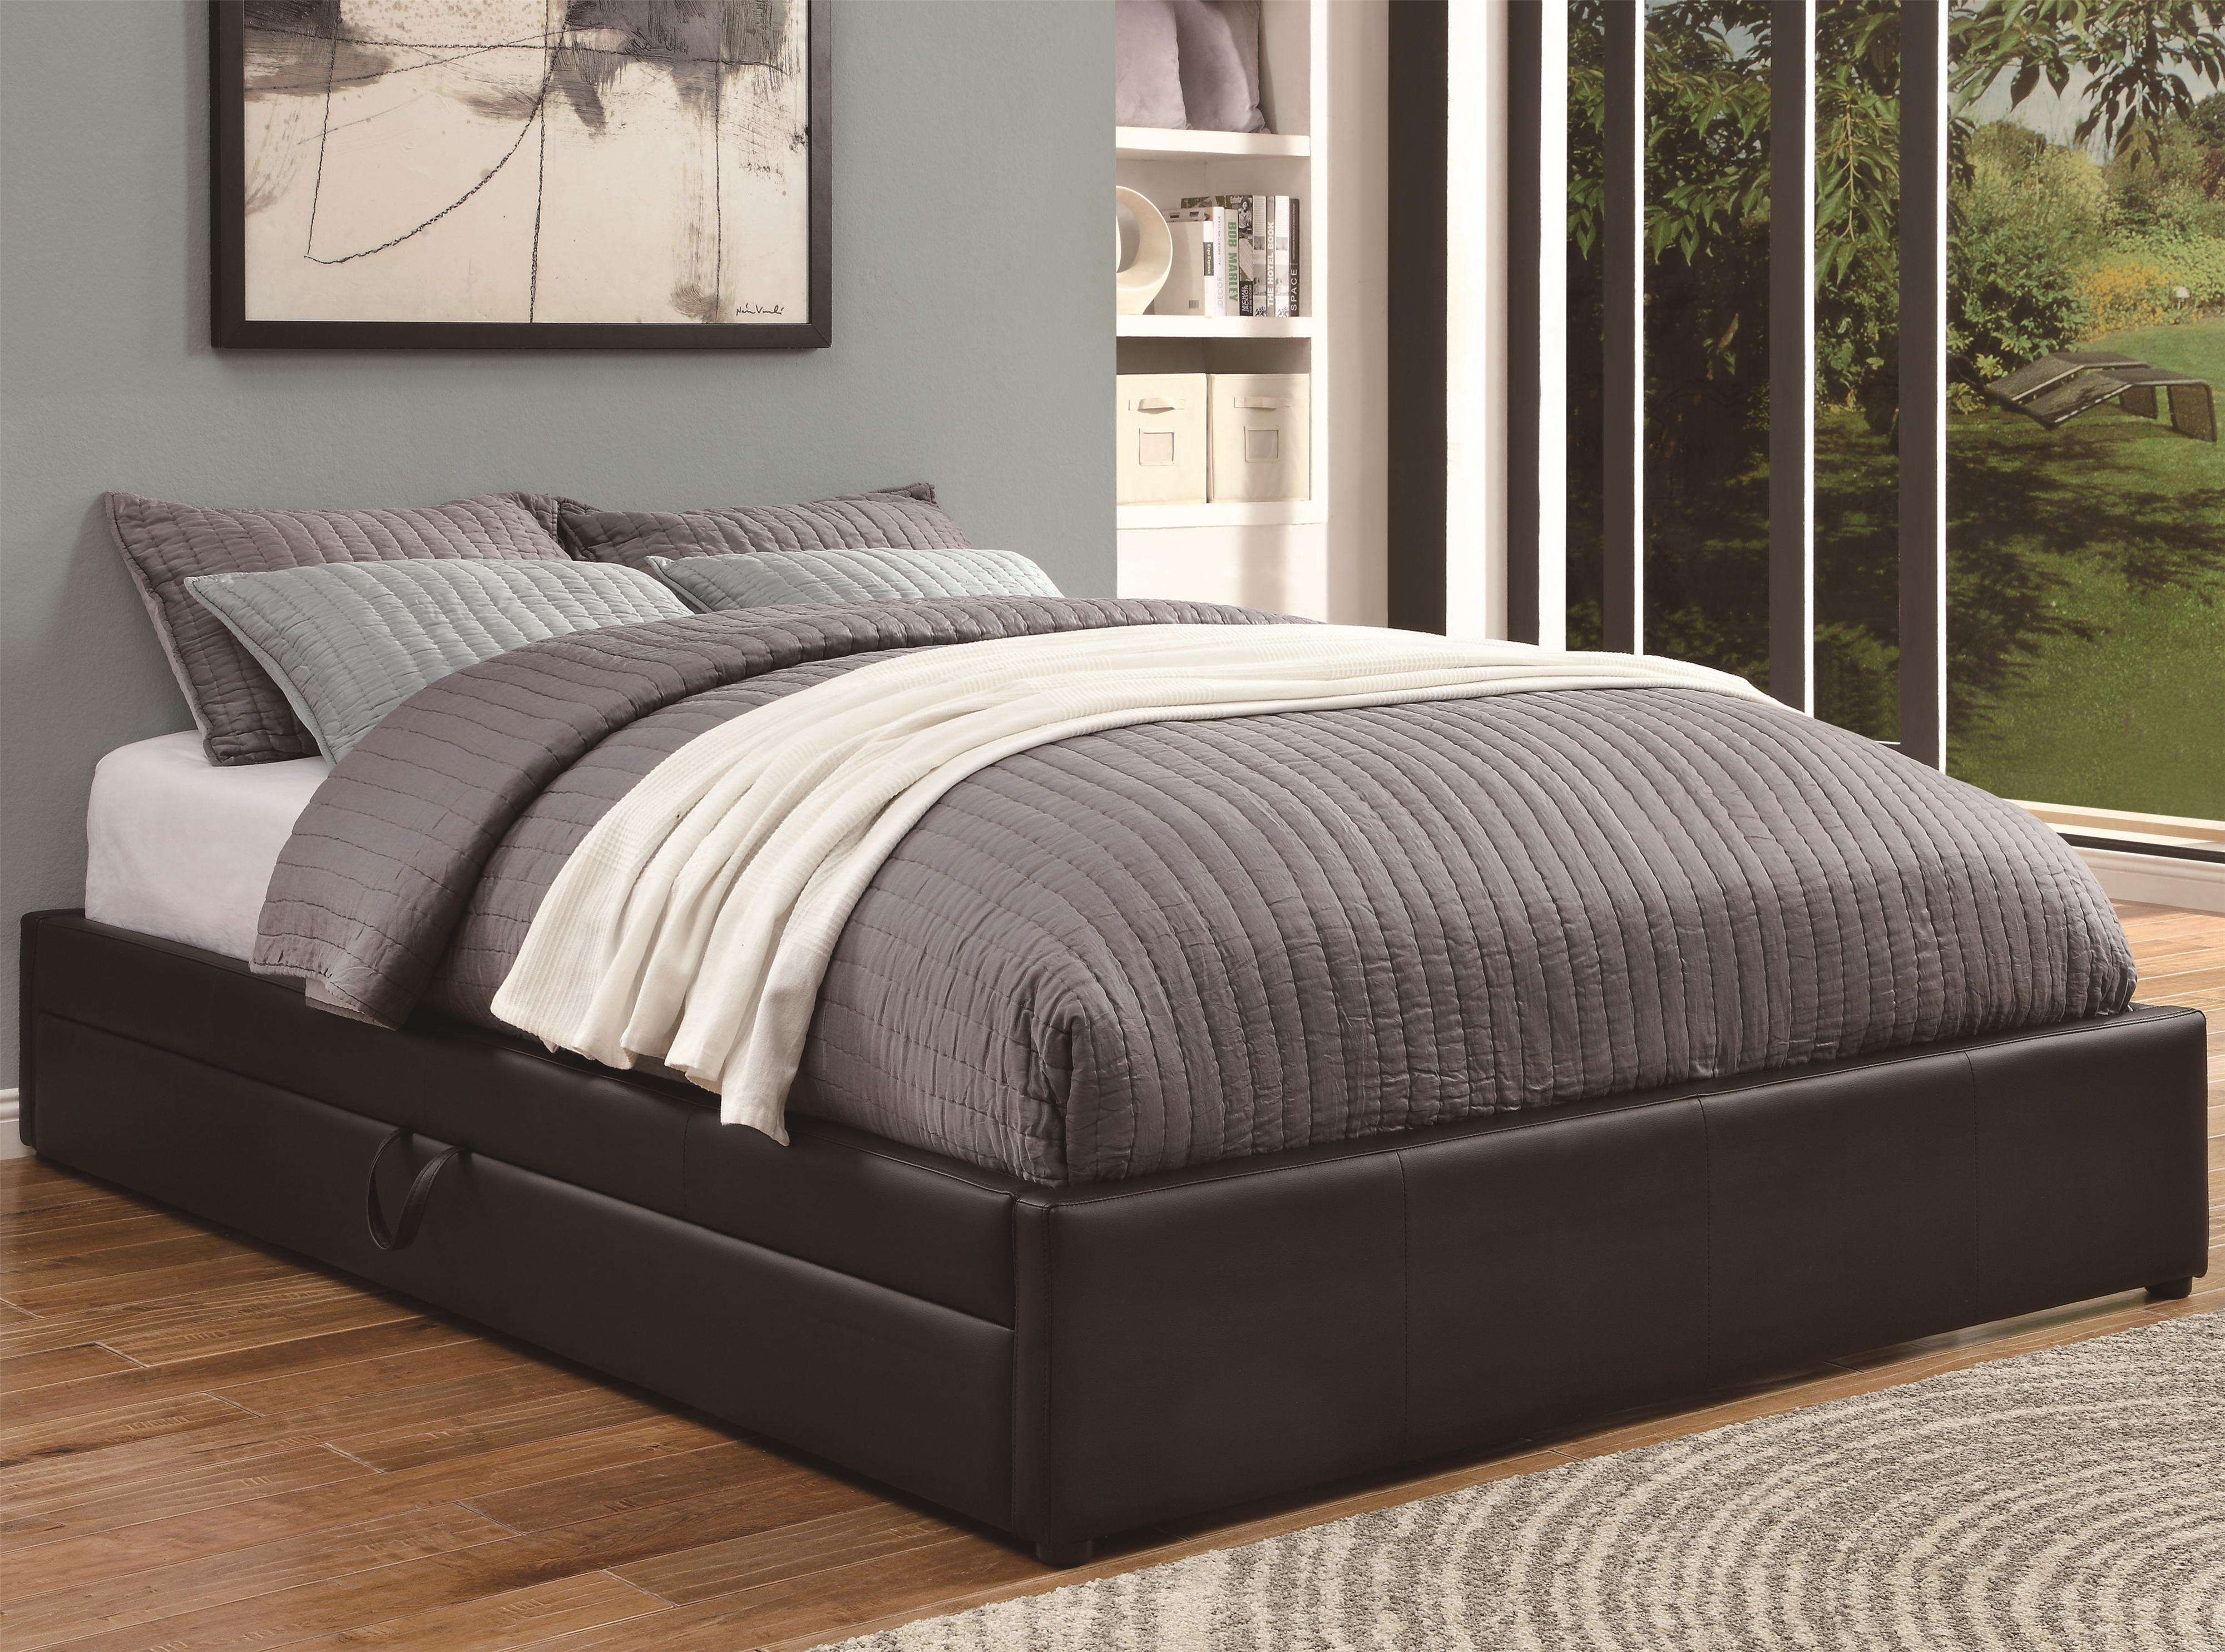 Coaster Upholstered Beds Queen Storage Bed - Item Number: 300386Q